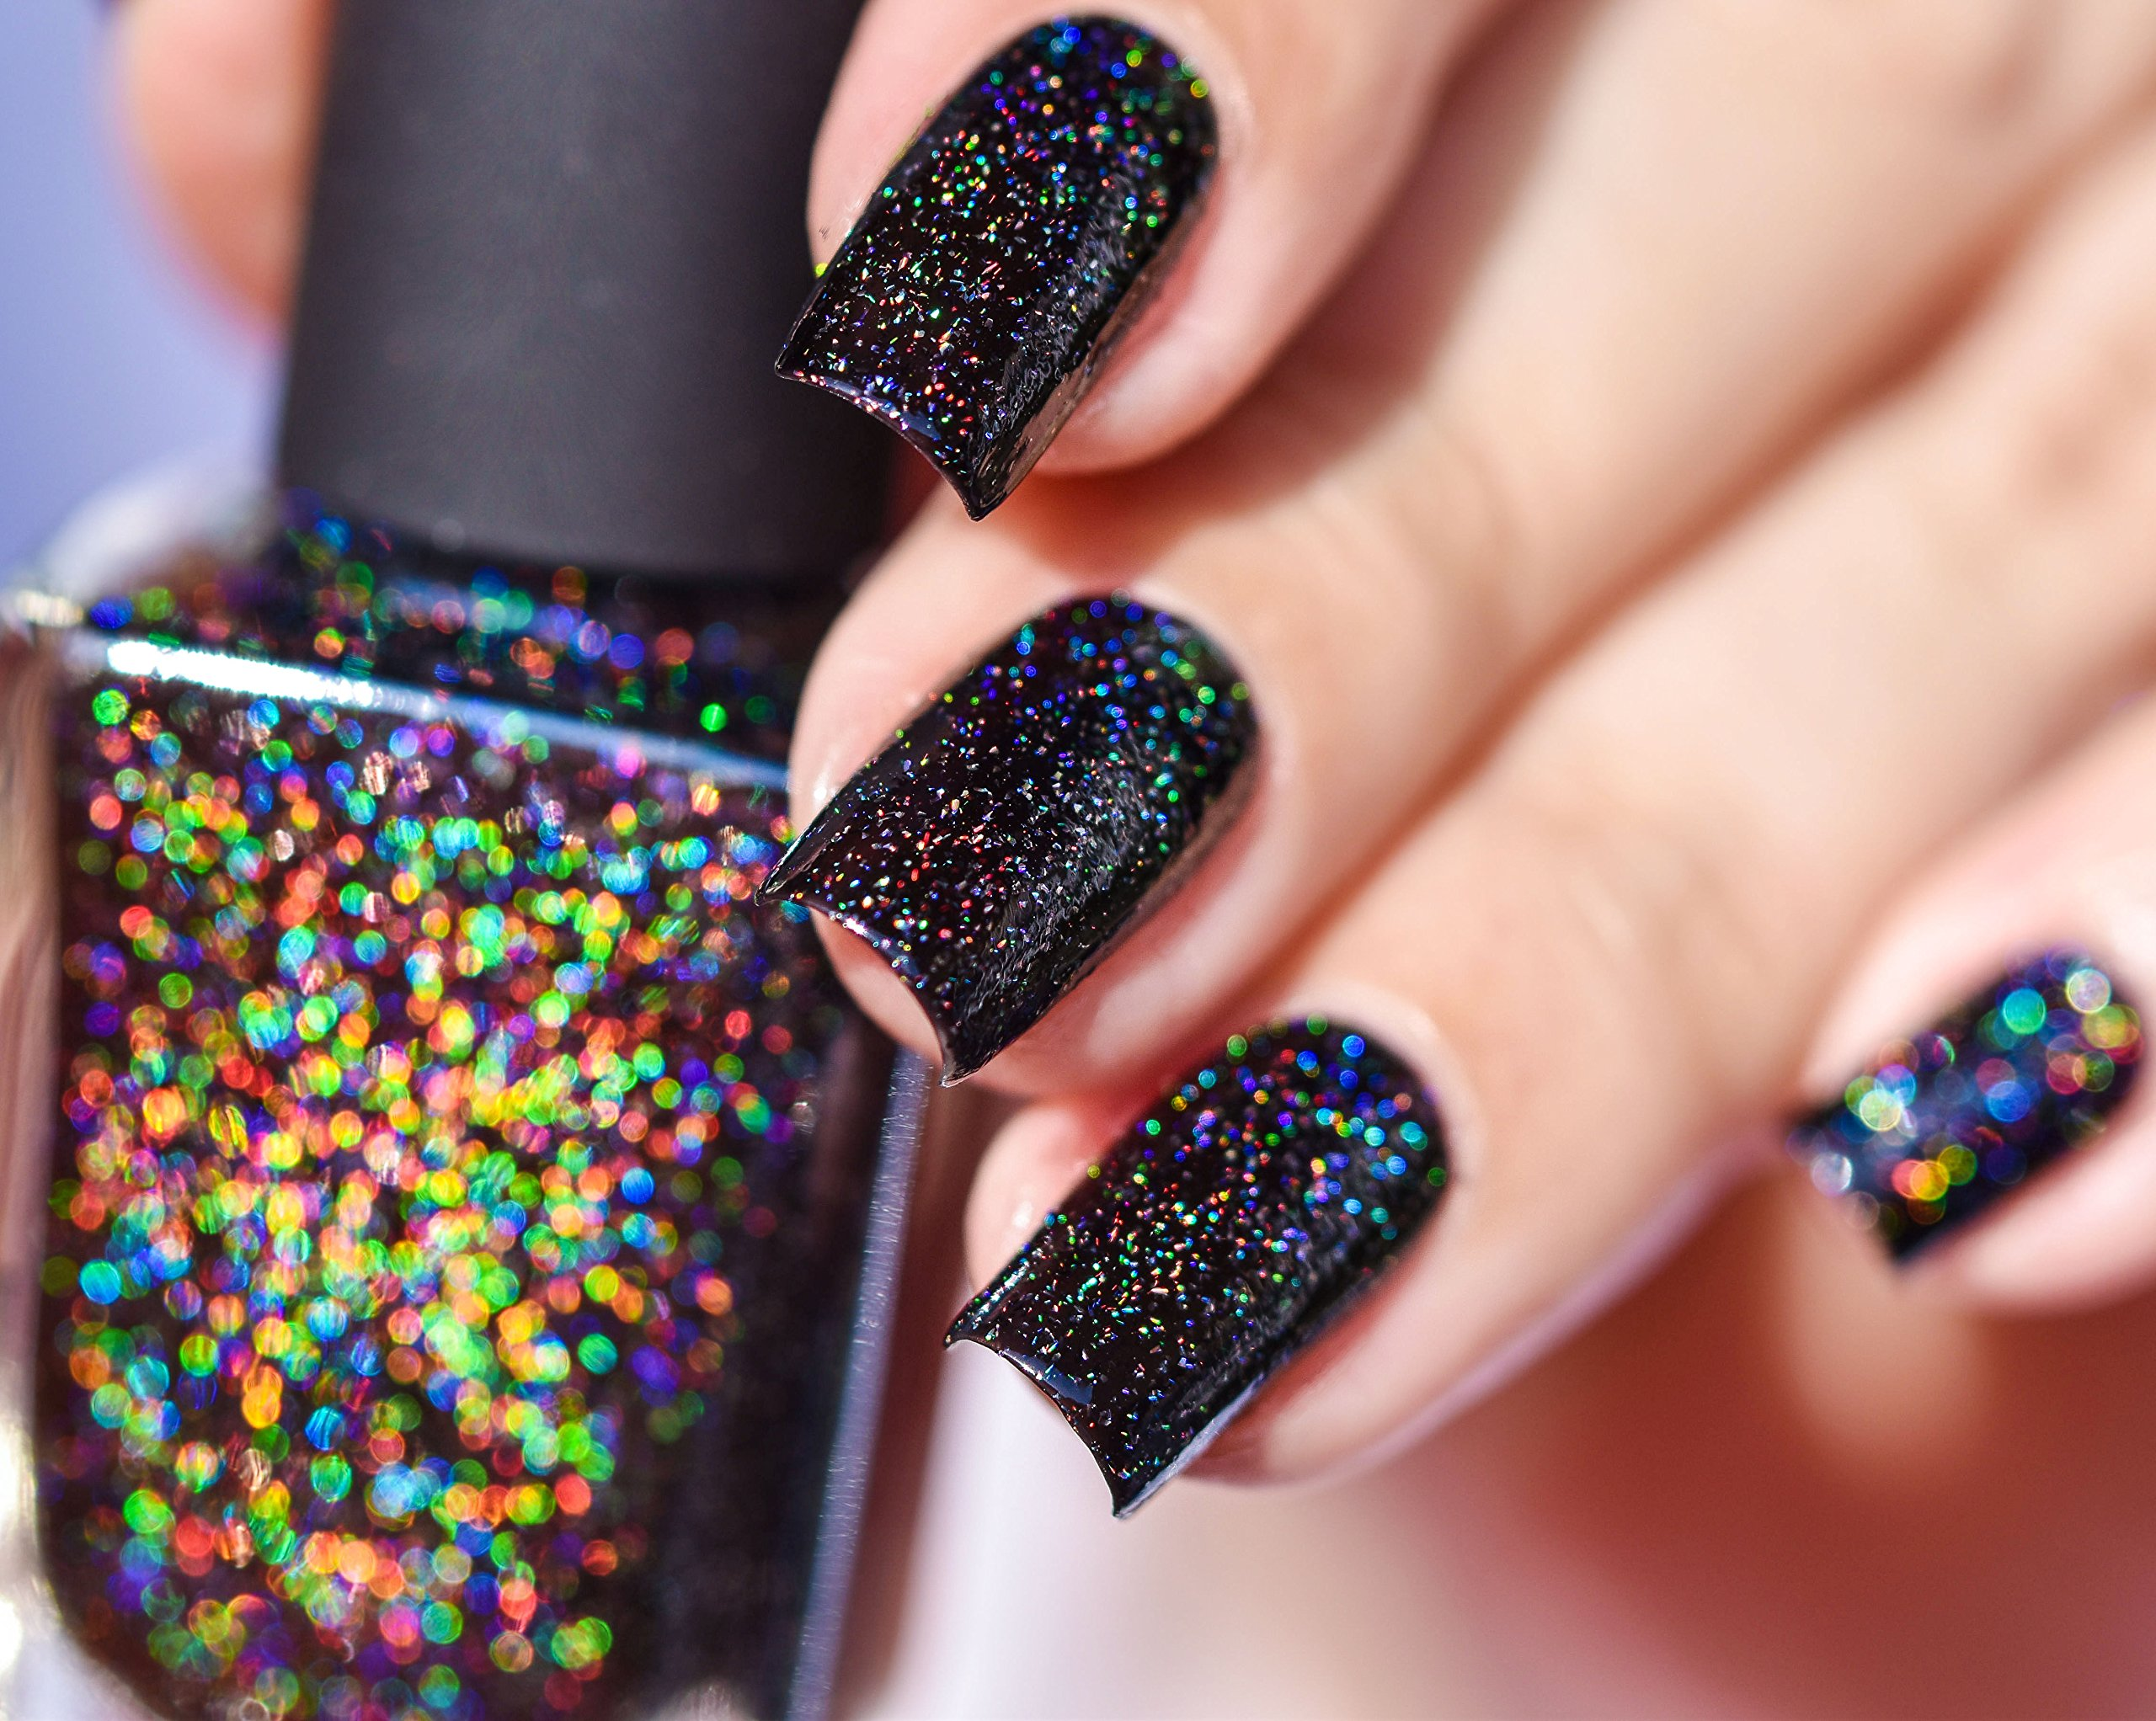 ILNP Cityscape - TRUE Black Holographic Jelly Nail Polish, High Gloss and Sparkle, Long Lasting, Chip Resistant Manicure, Non-Toxic, Vegan, Cruelty Free, 12ml by ILNP Cosmetics, Inc.